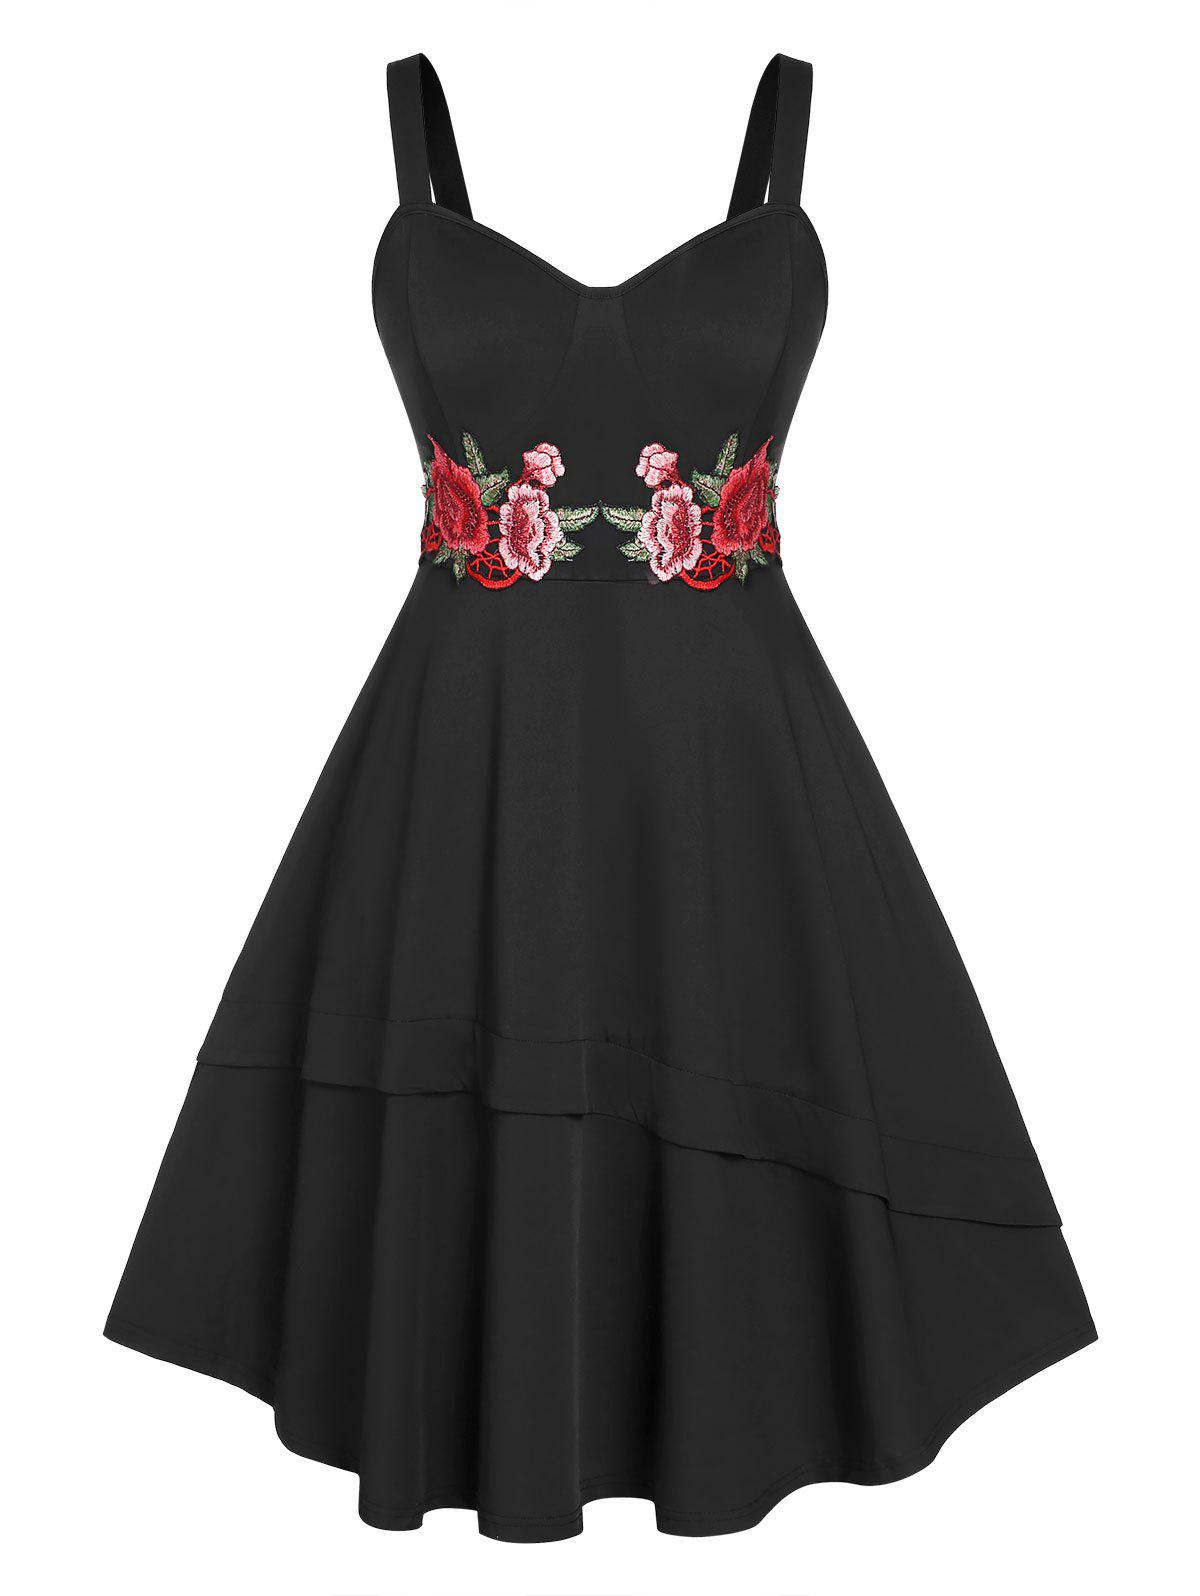 Plus Size Embroidered Flower Flounce Dress - BLACK 5X